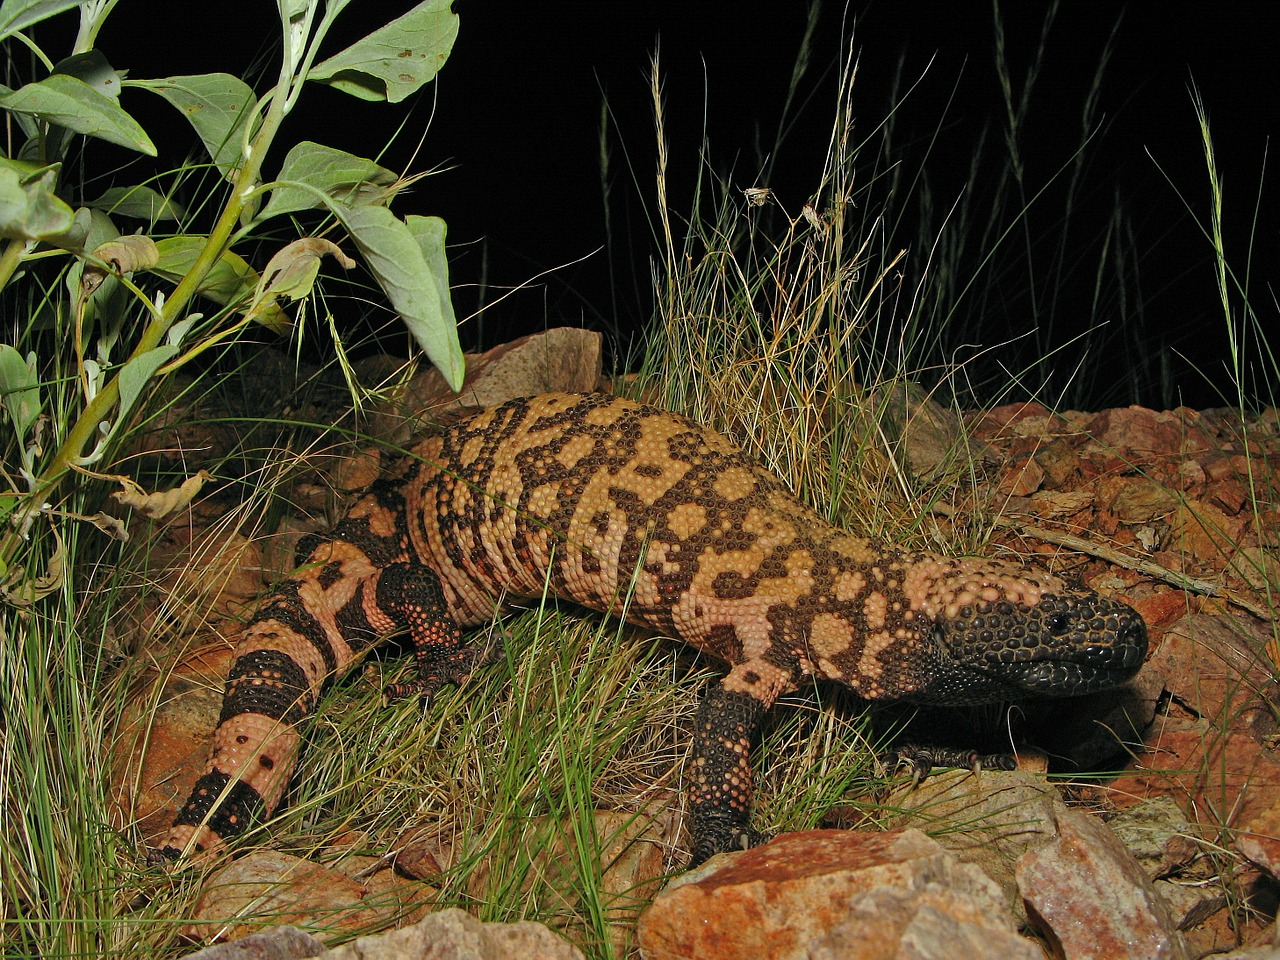 Gila monster facts,reptiles and amphibians, Gila Monster